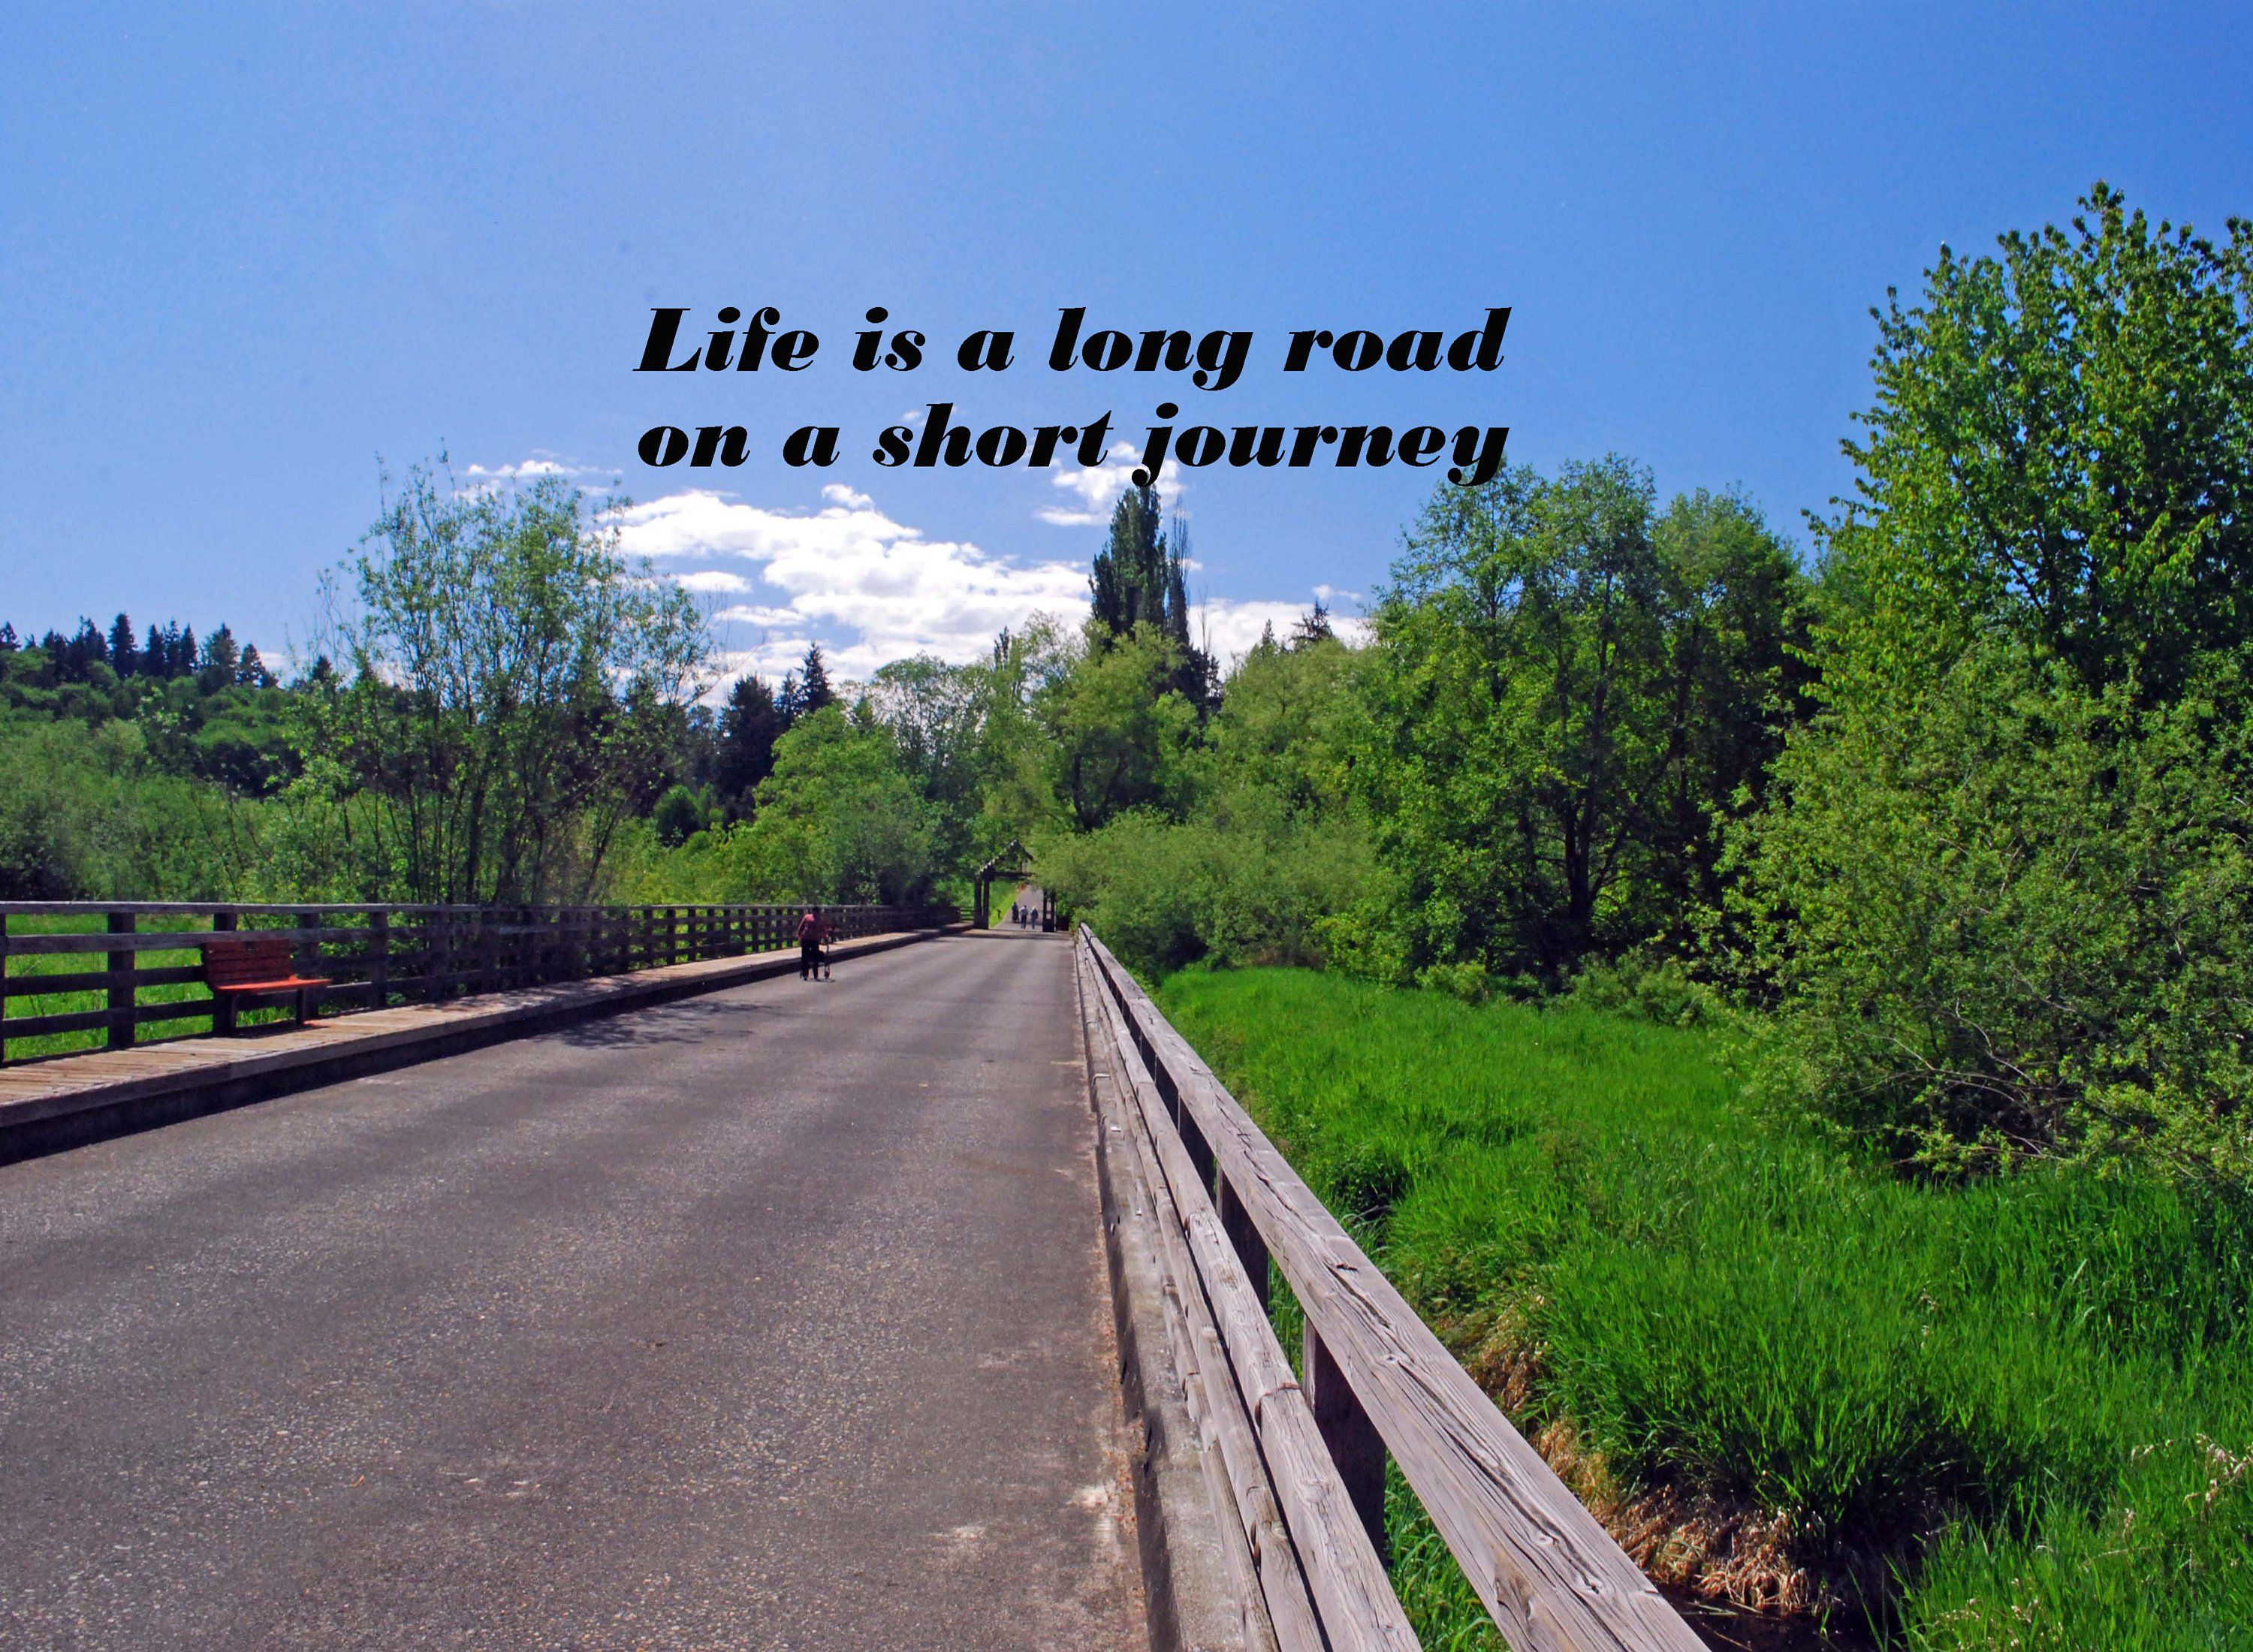 photo of a road under a bright sunny blue sky a life quote